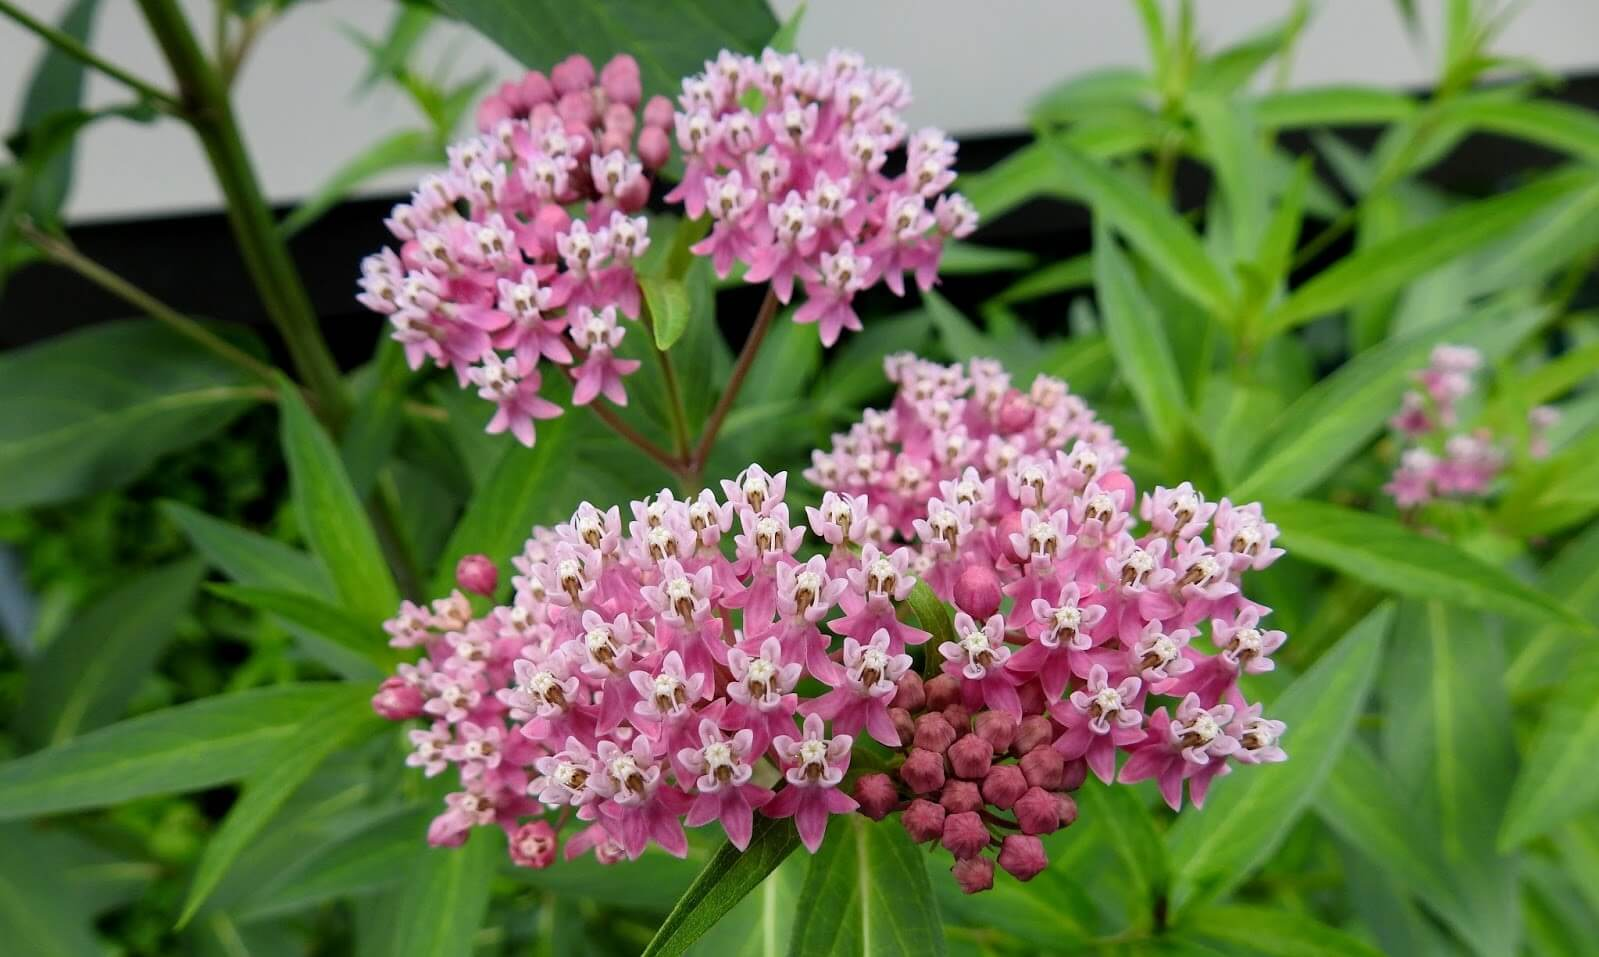 A photo of swamp milkweed in bloom.